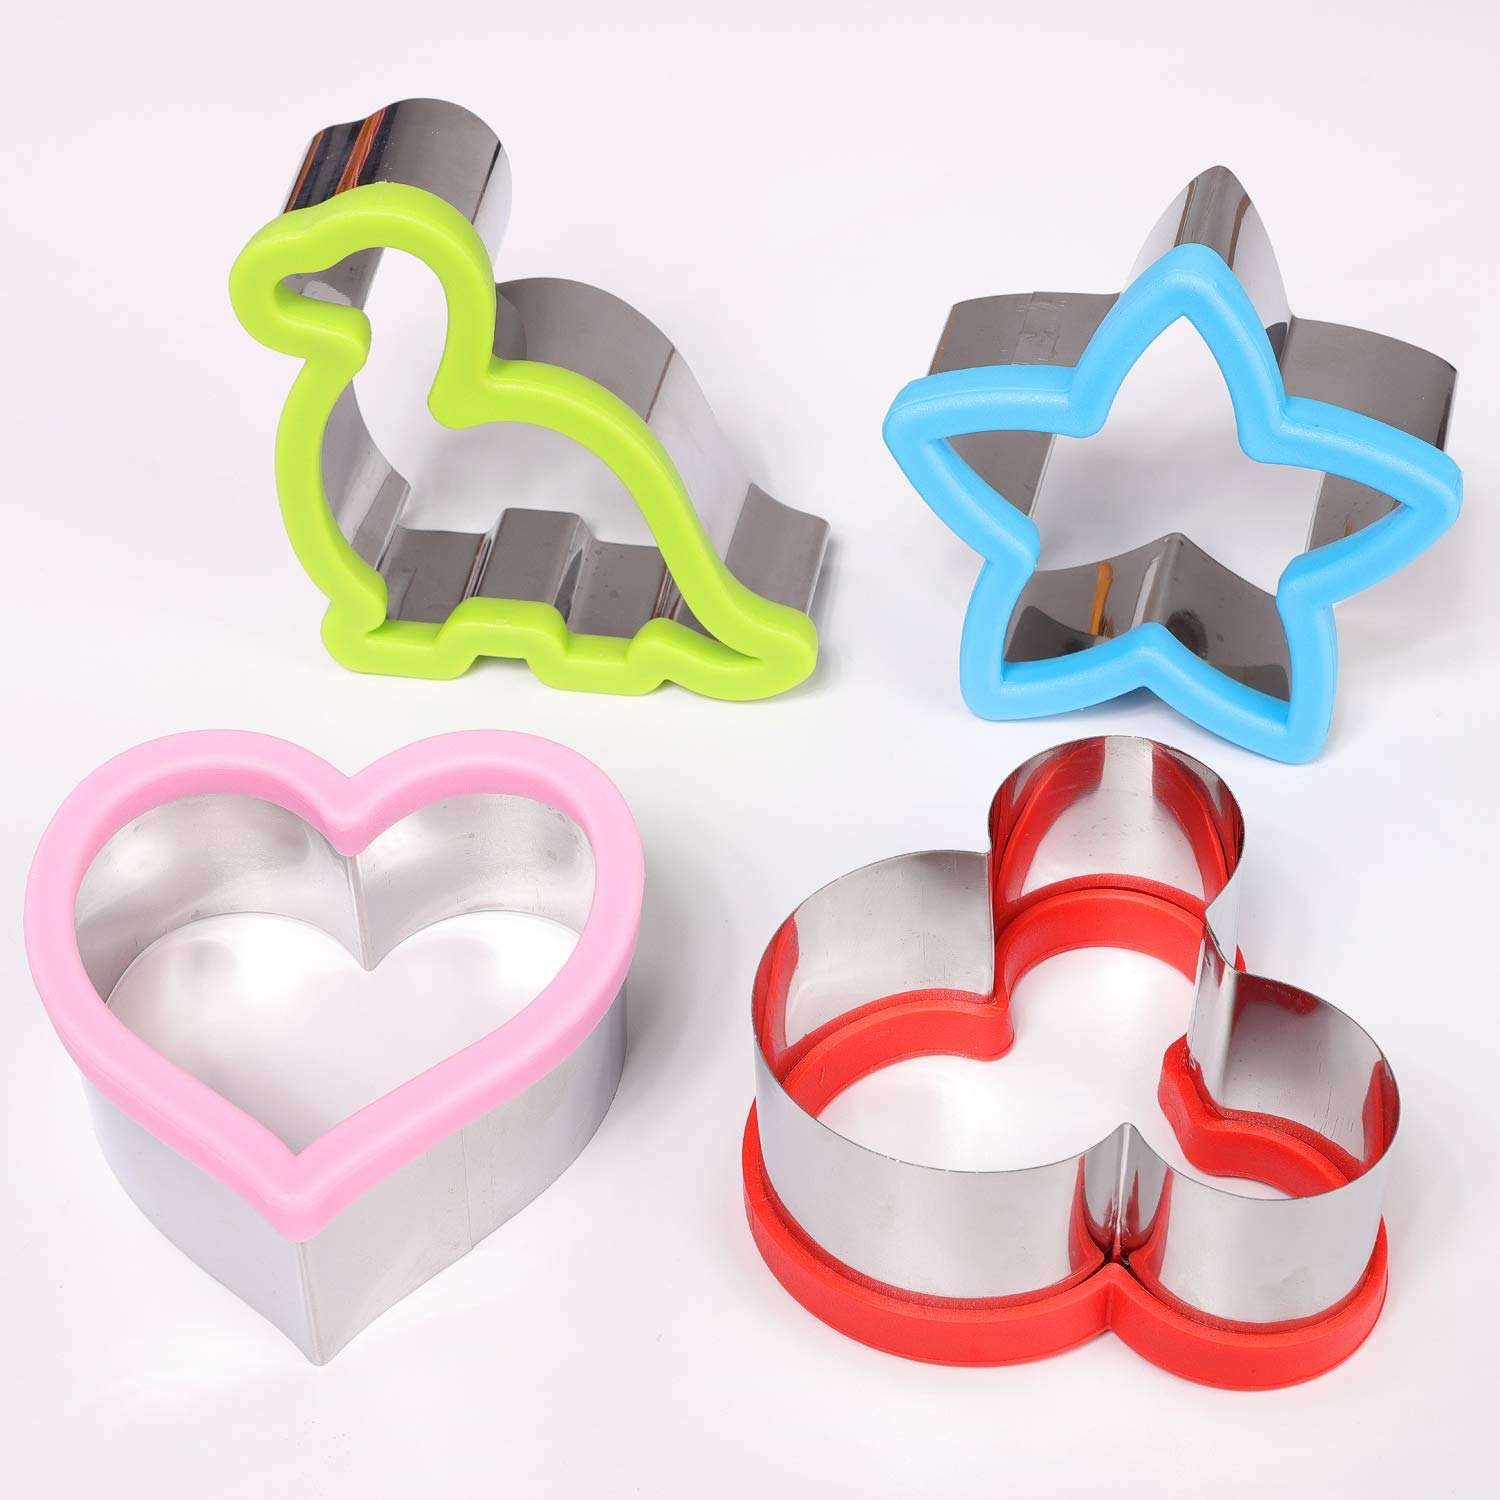 Sandwiches Cutter Mickey Mouse Dinosaur Heart Star Shapes Biscuit Mold for kids Cookie cutter mini tart pan